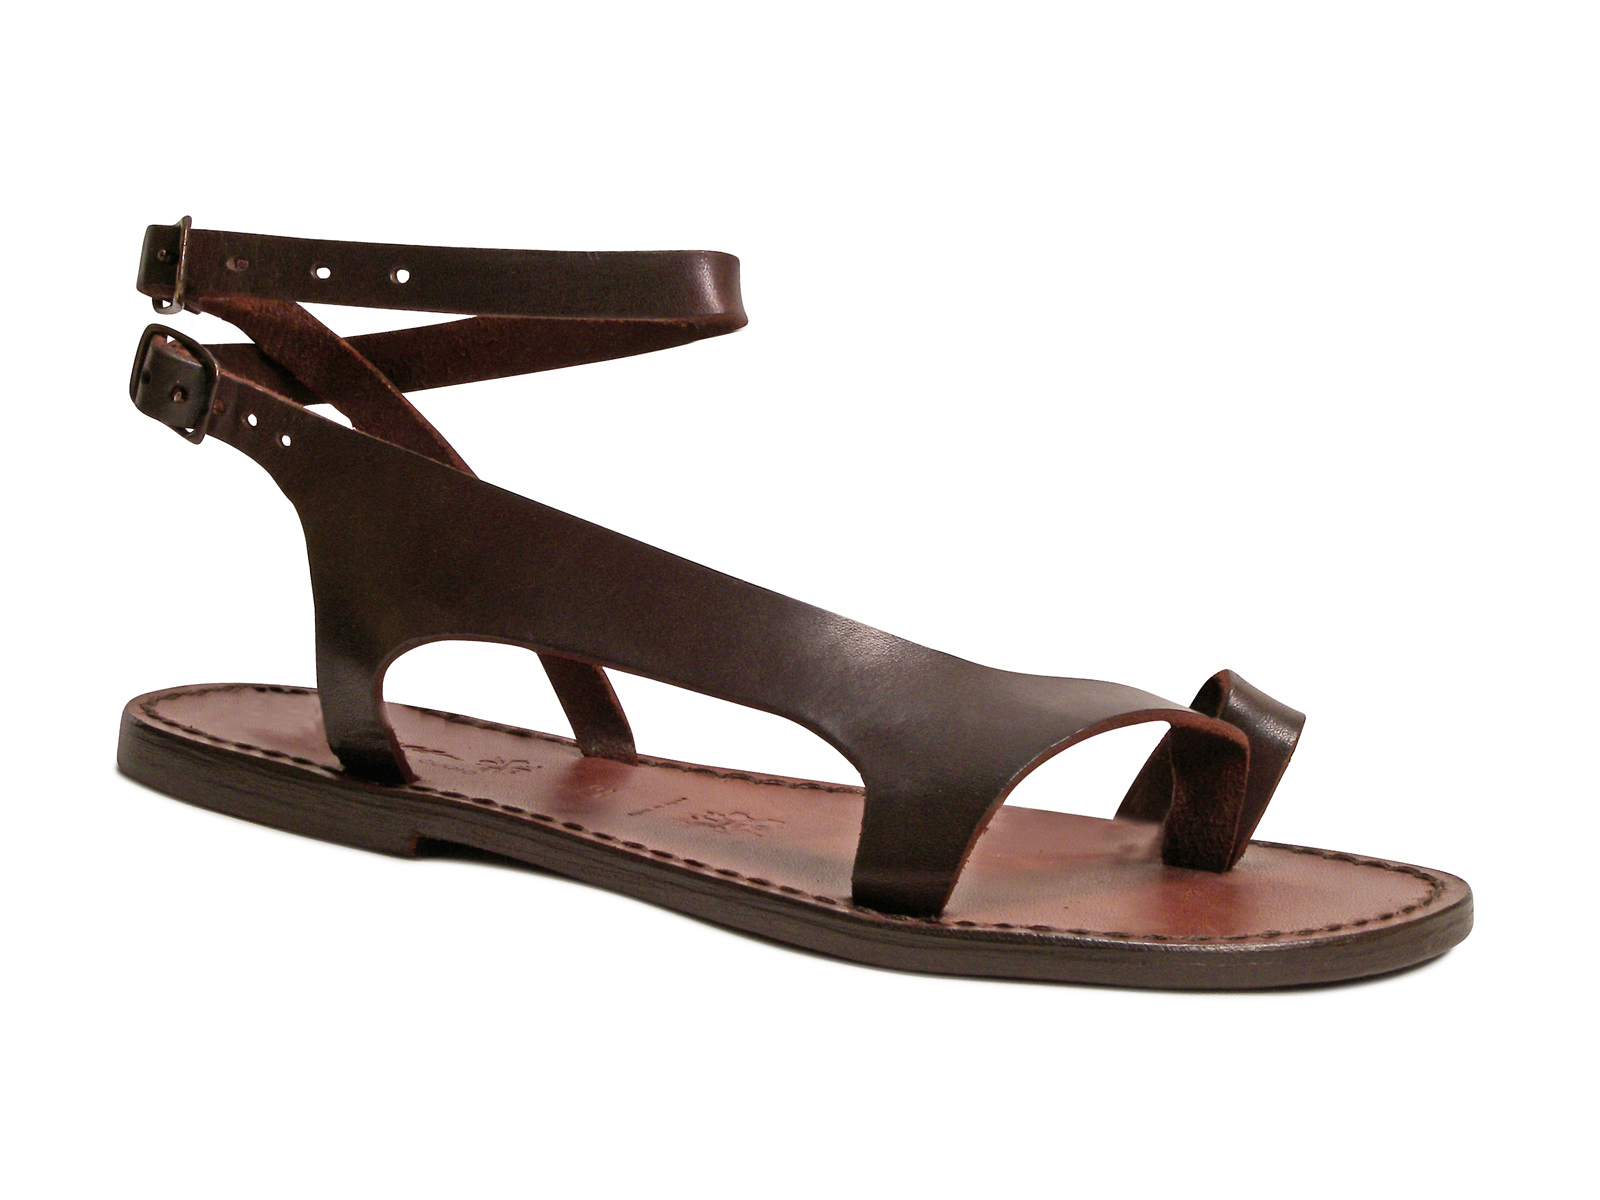 Women's italian leather sandals